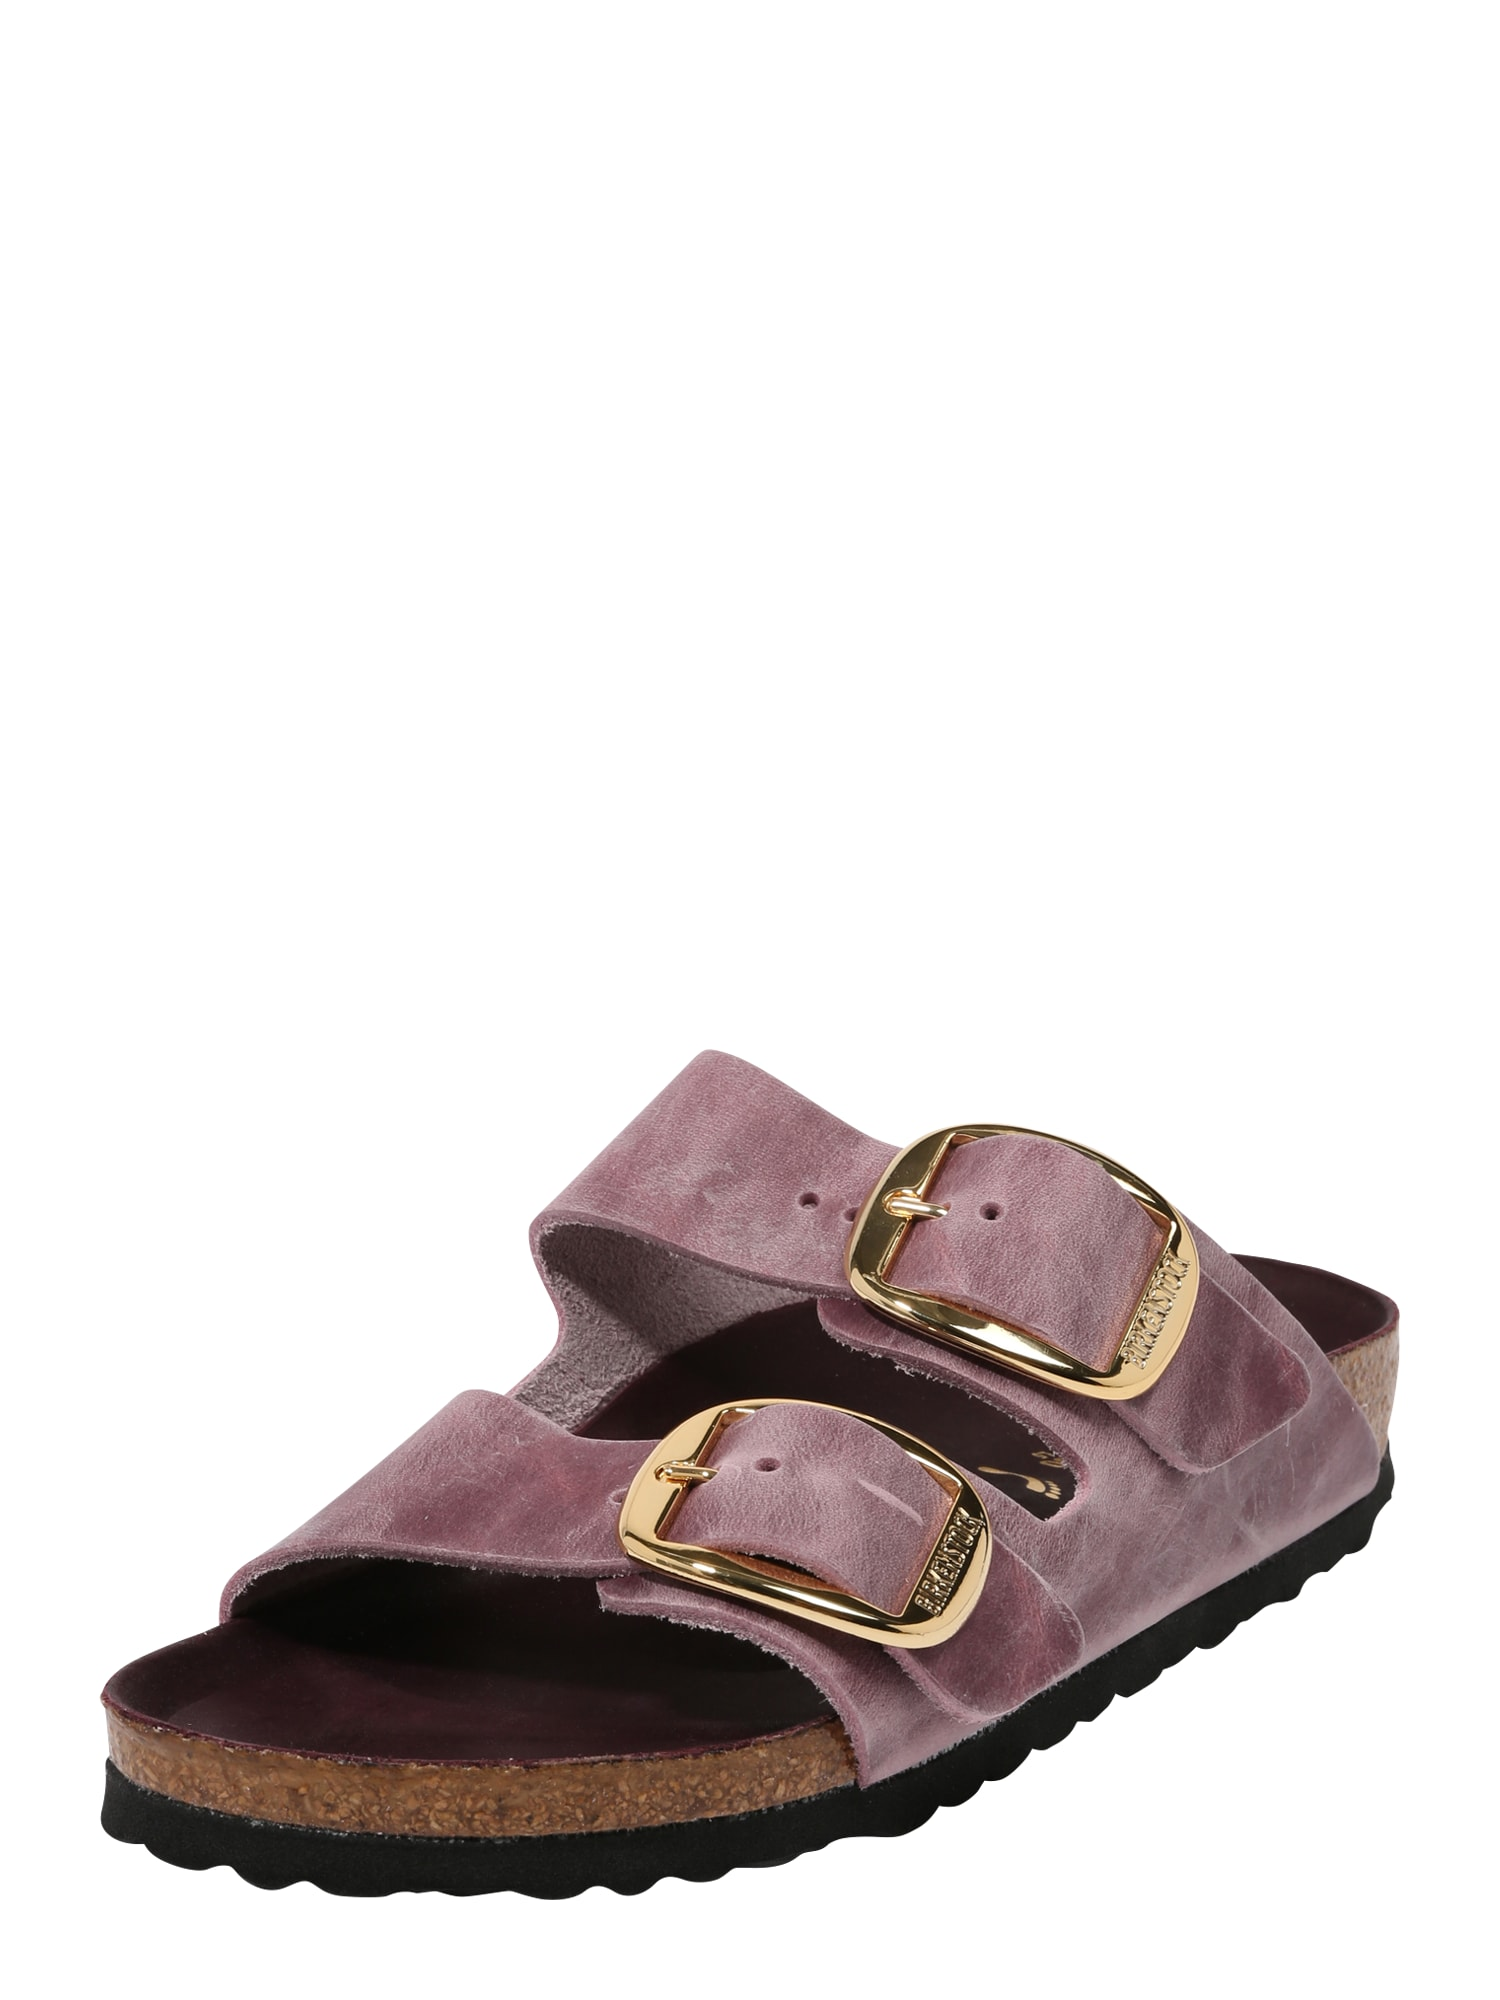 BIRKENSTOCK Pantofle 'Arizona Big Buckle'  lenvandulová